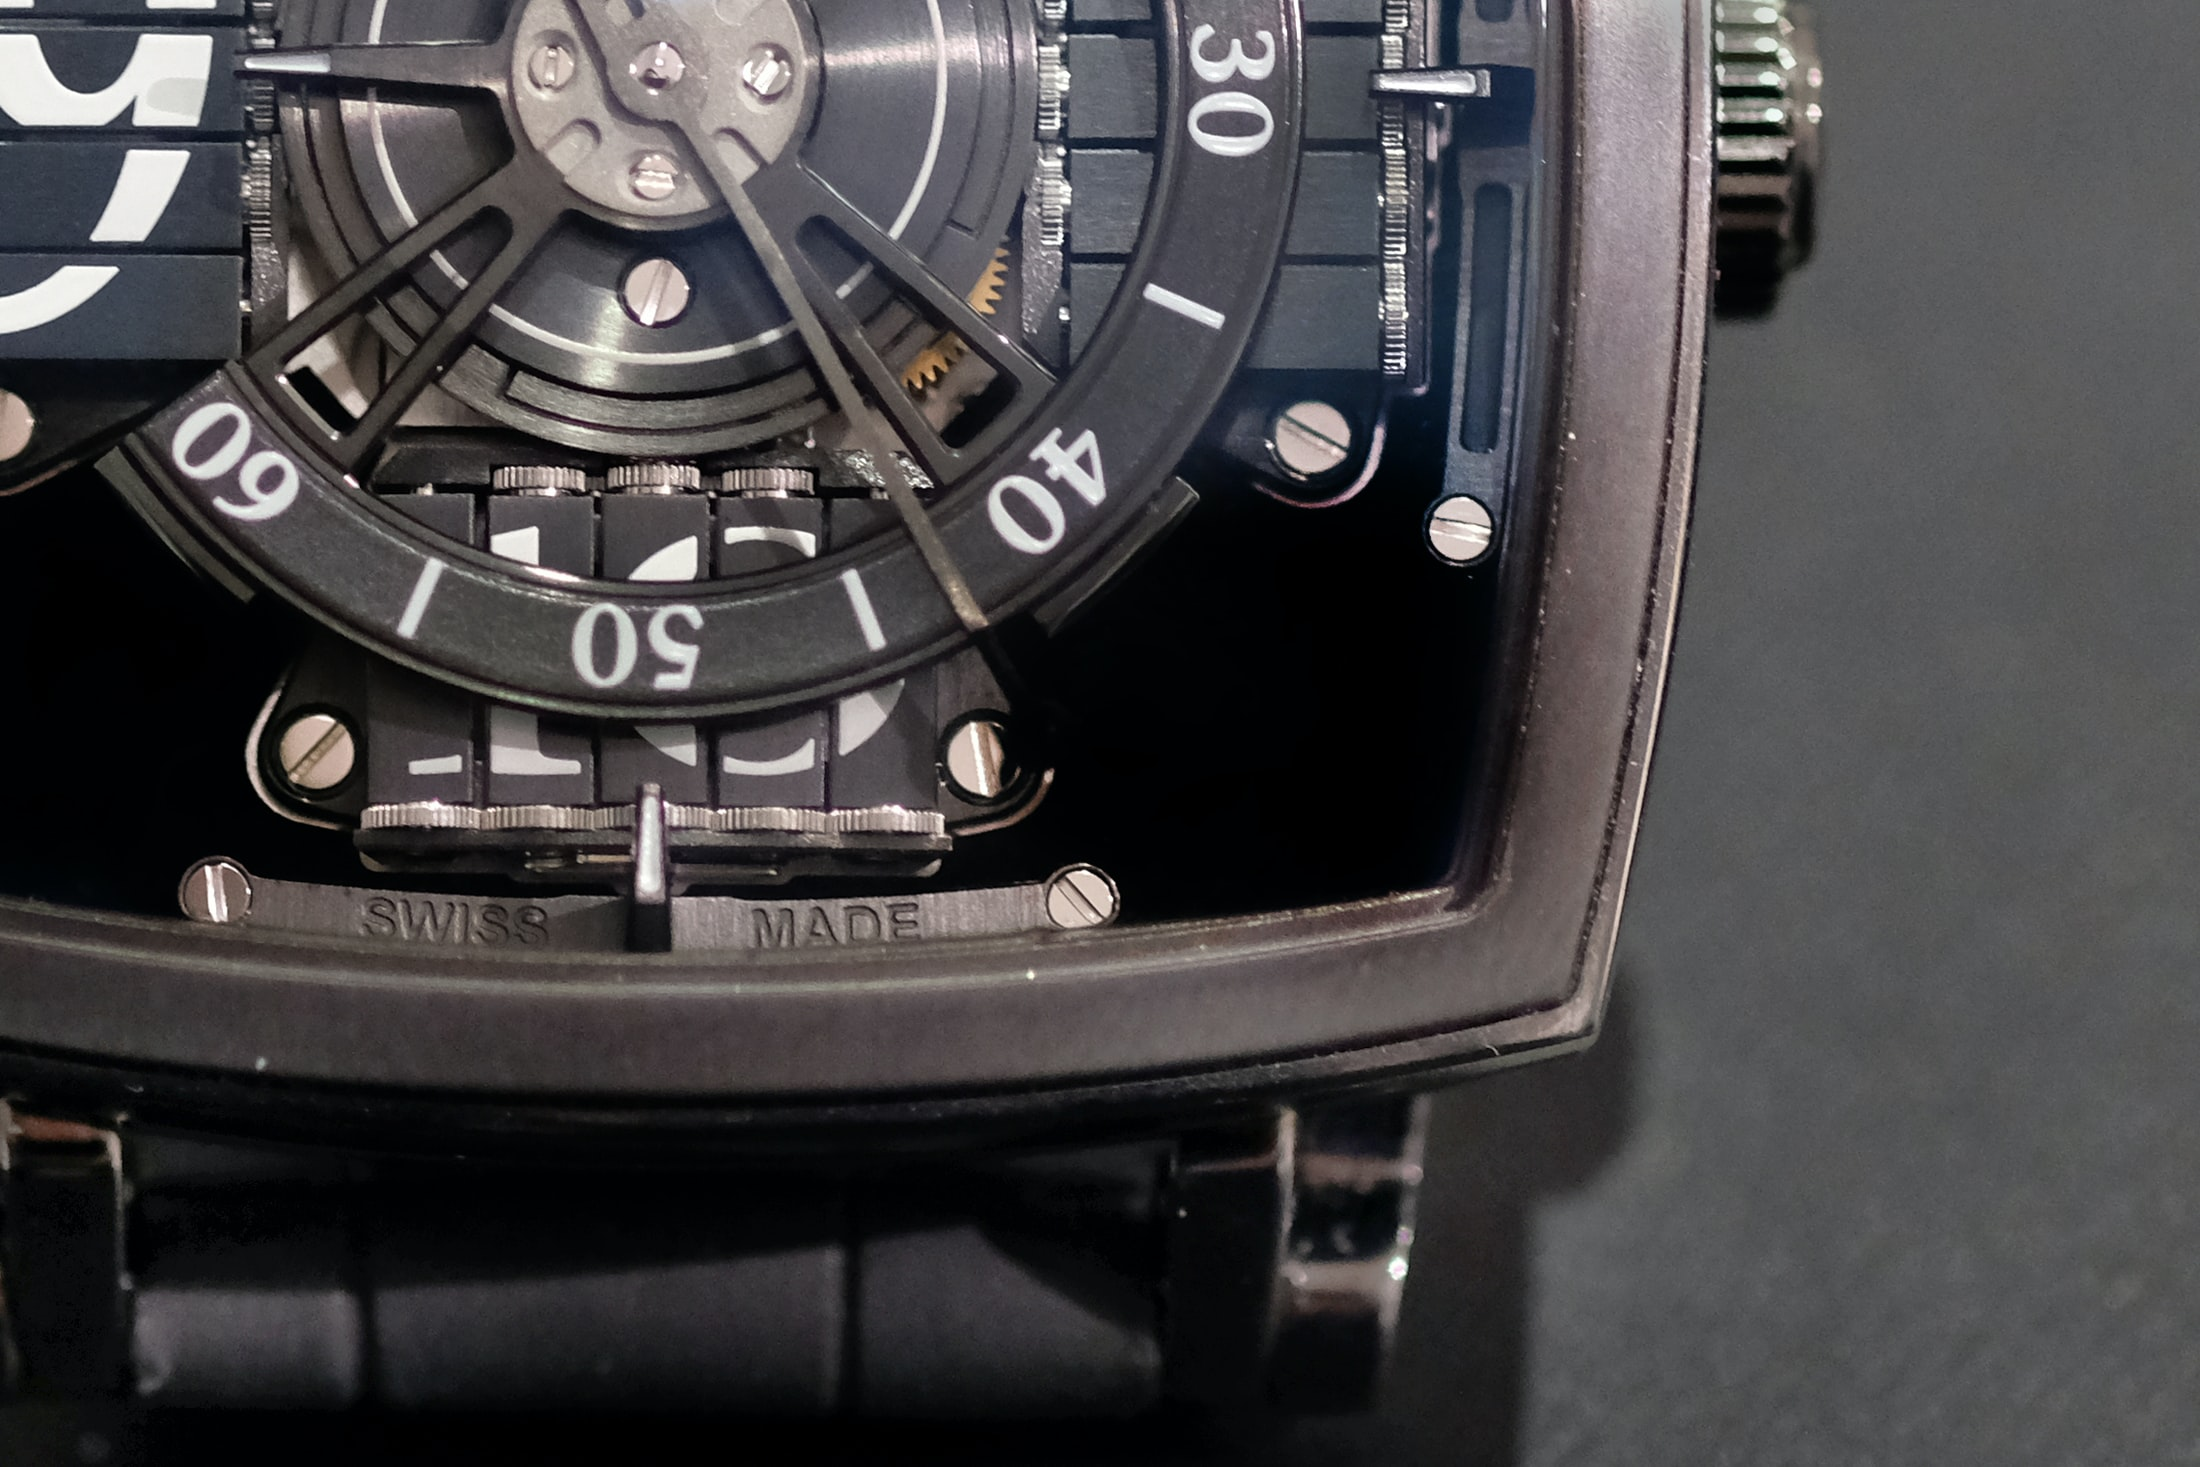 vantablack sequential one mct watch Hands-On: The MCT Sequential One 110 Evo Vantablack, The Darkest Watch Ever Made Hands-On: The MCT Sequential One 110 Evo Vantablack, The Darkest Watch Ever Made vantablack 05